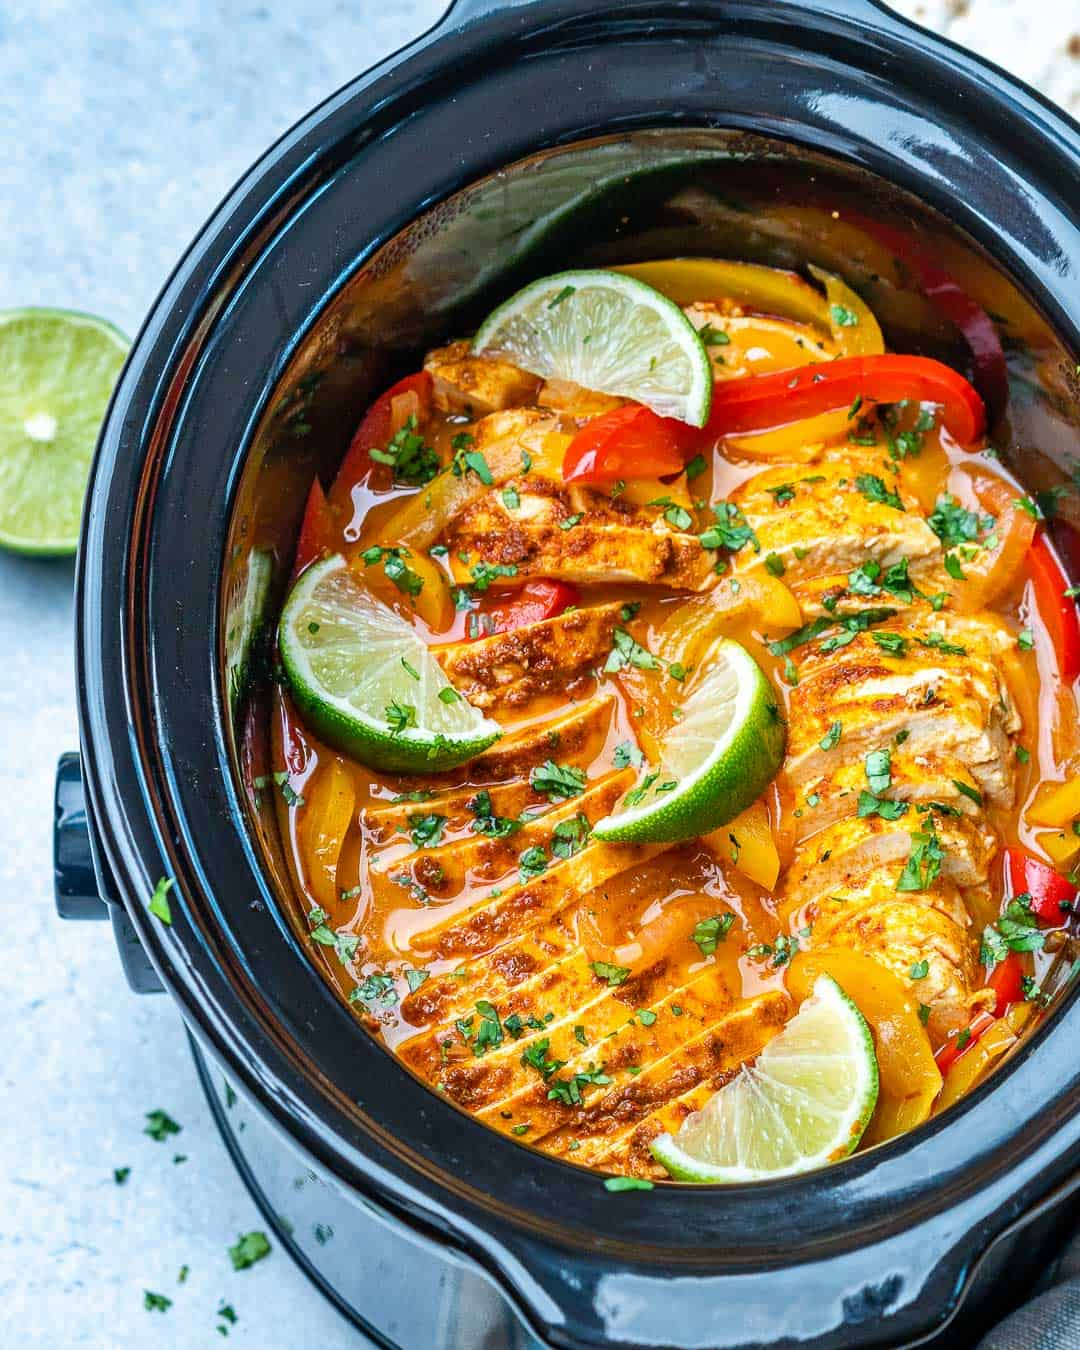 Slow cooker chicken fajitas in black Crockpot with limes and cilantro garnishes.